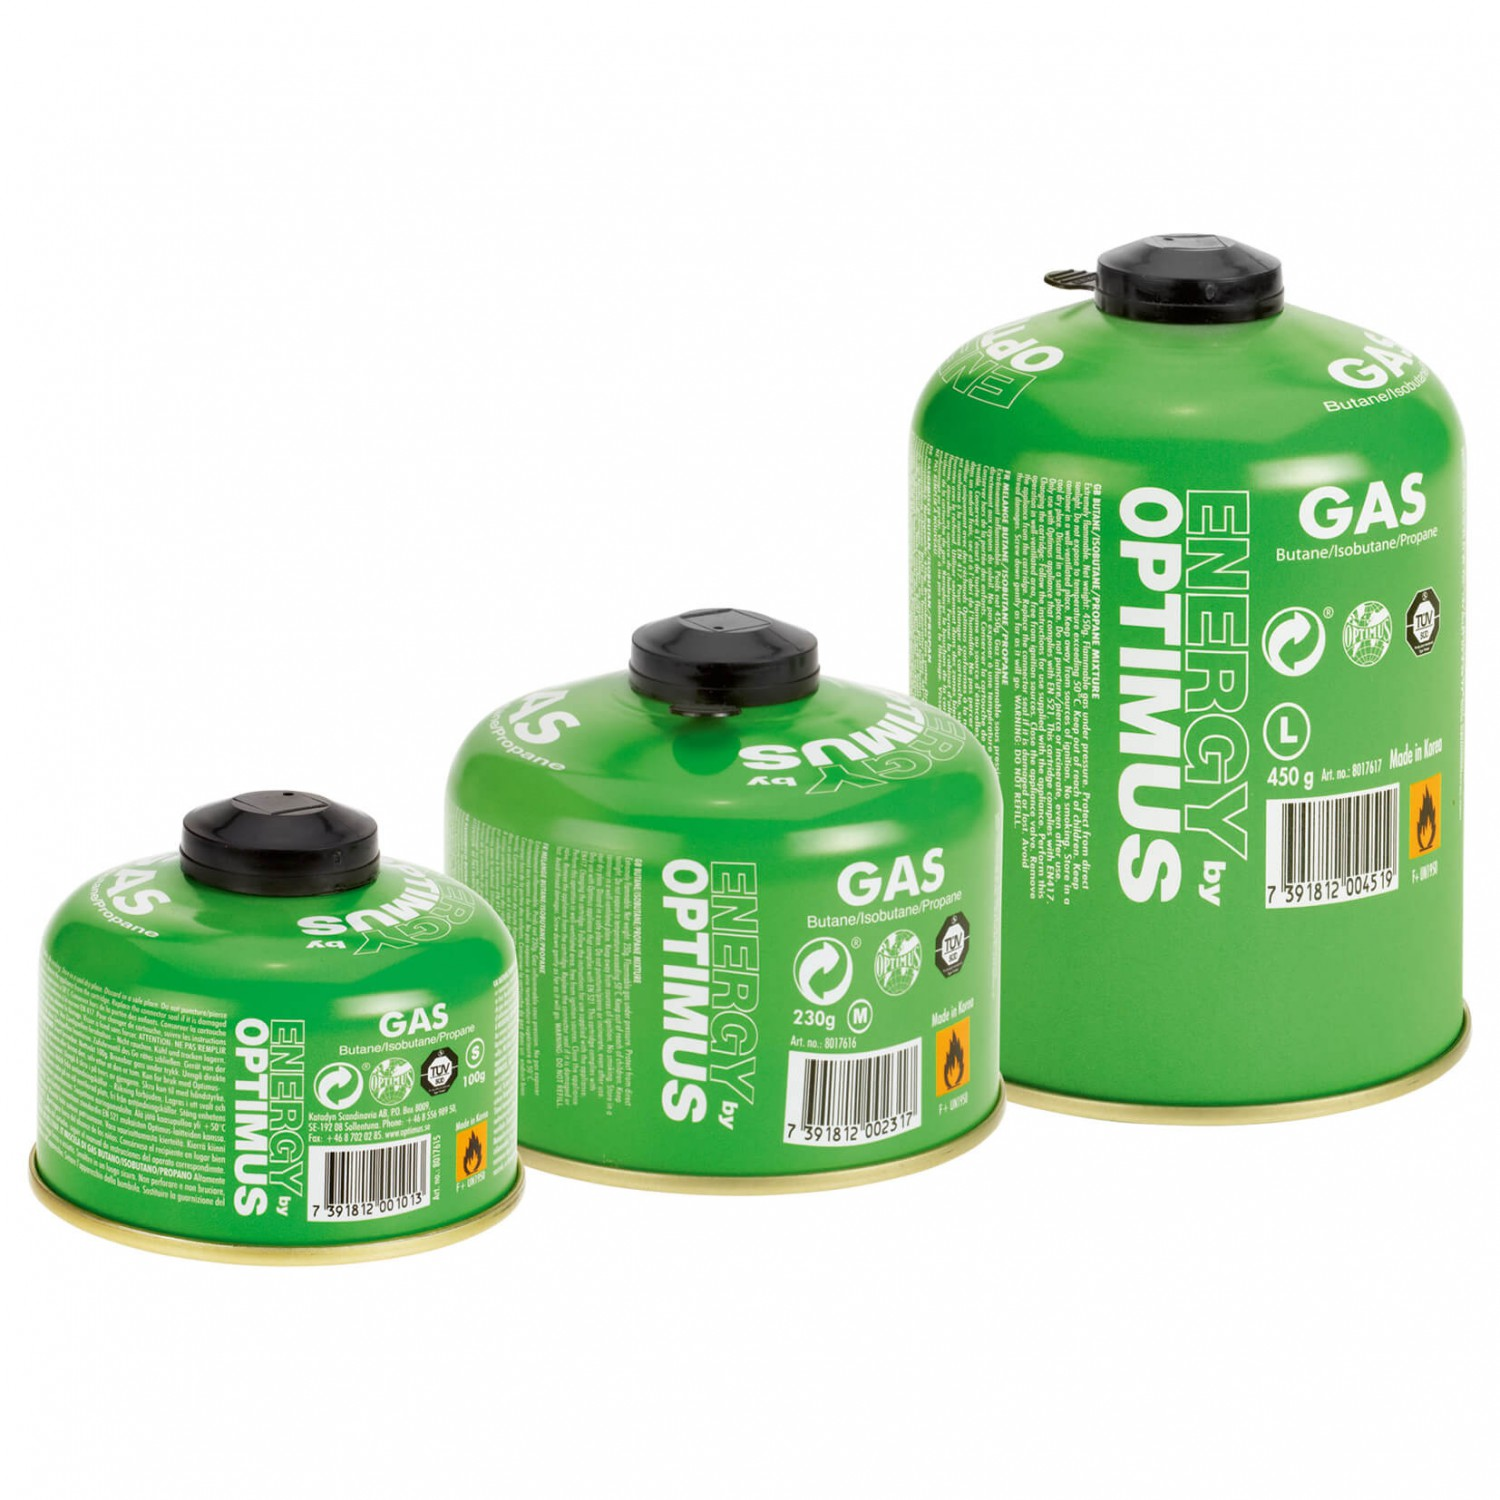 Optimus - Gas Canister (Butan/ Propan) - Gas canister